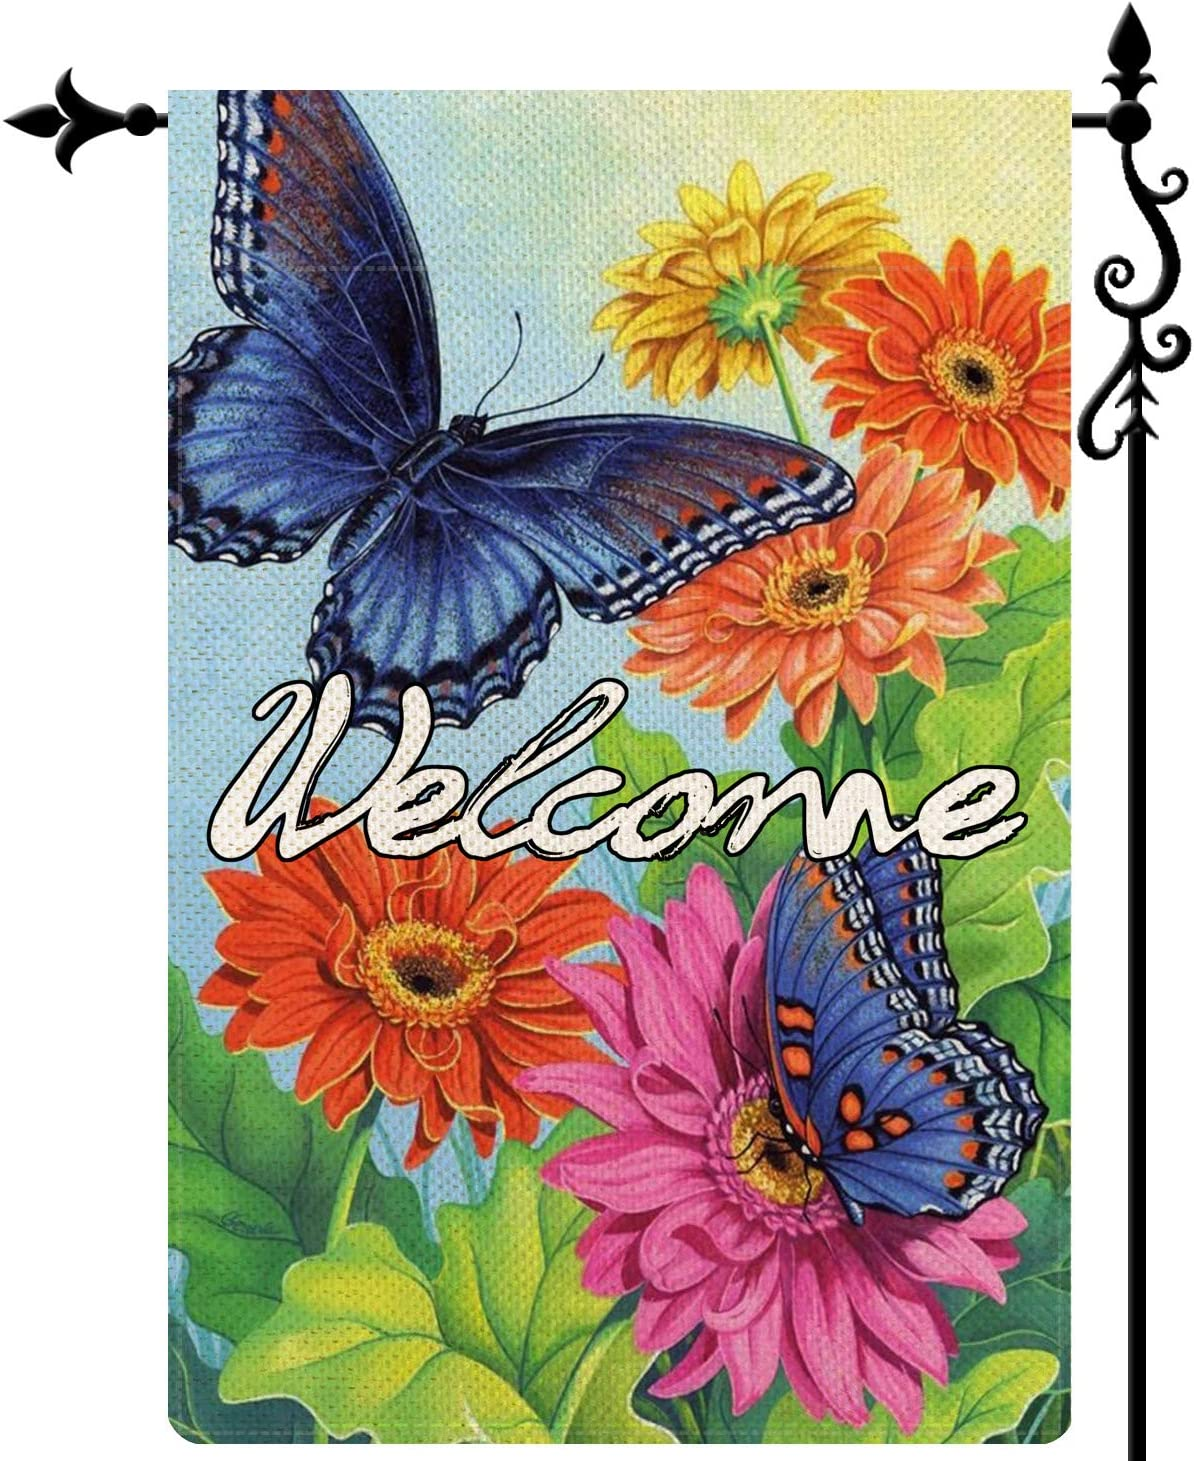 Coskaka Hello Spring Butterflies Floral Garden Flag Vertical Double Sided Burlap Yard Lawn Welcome Floral Outdoor Decor 12.5 x 18